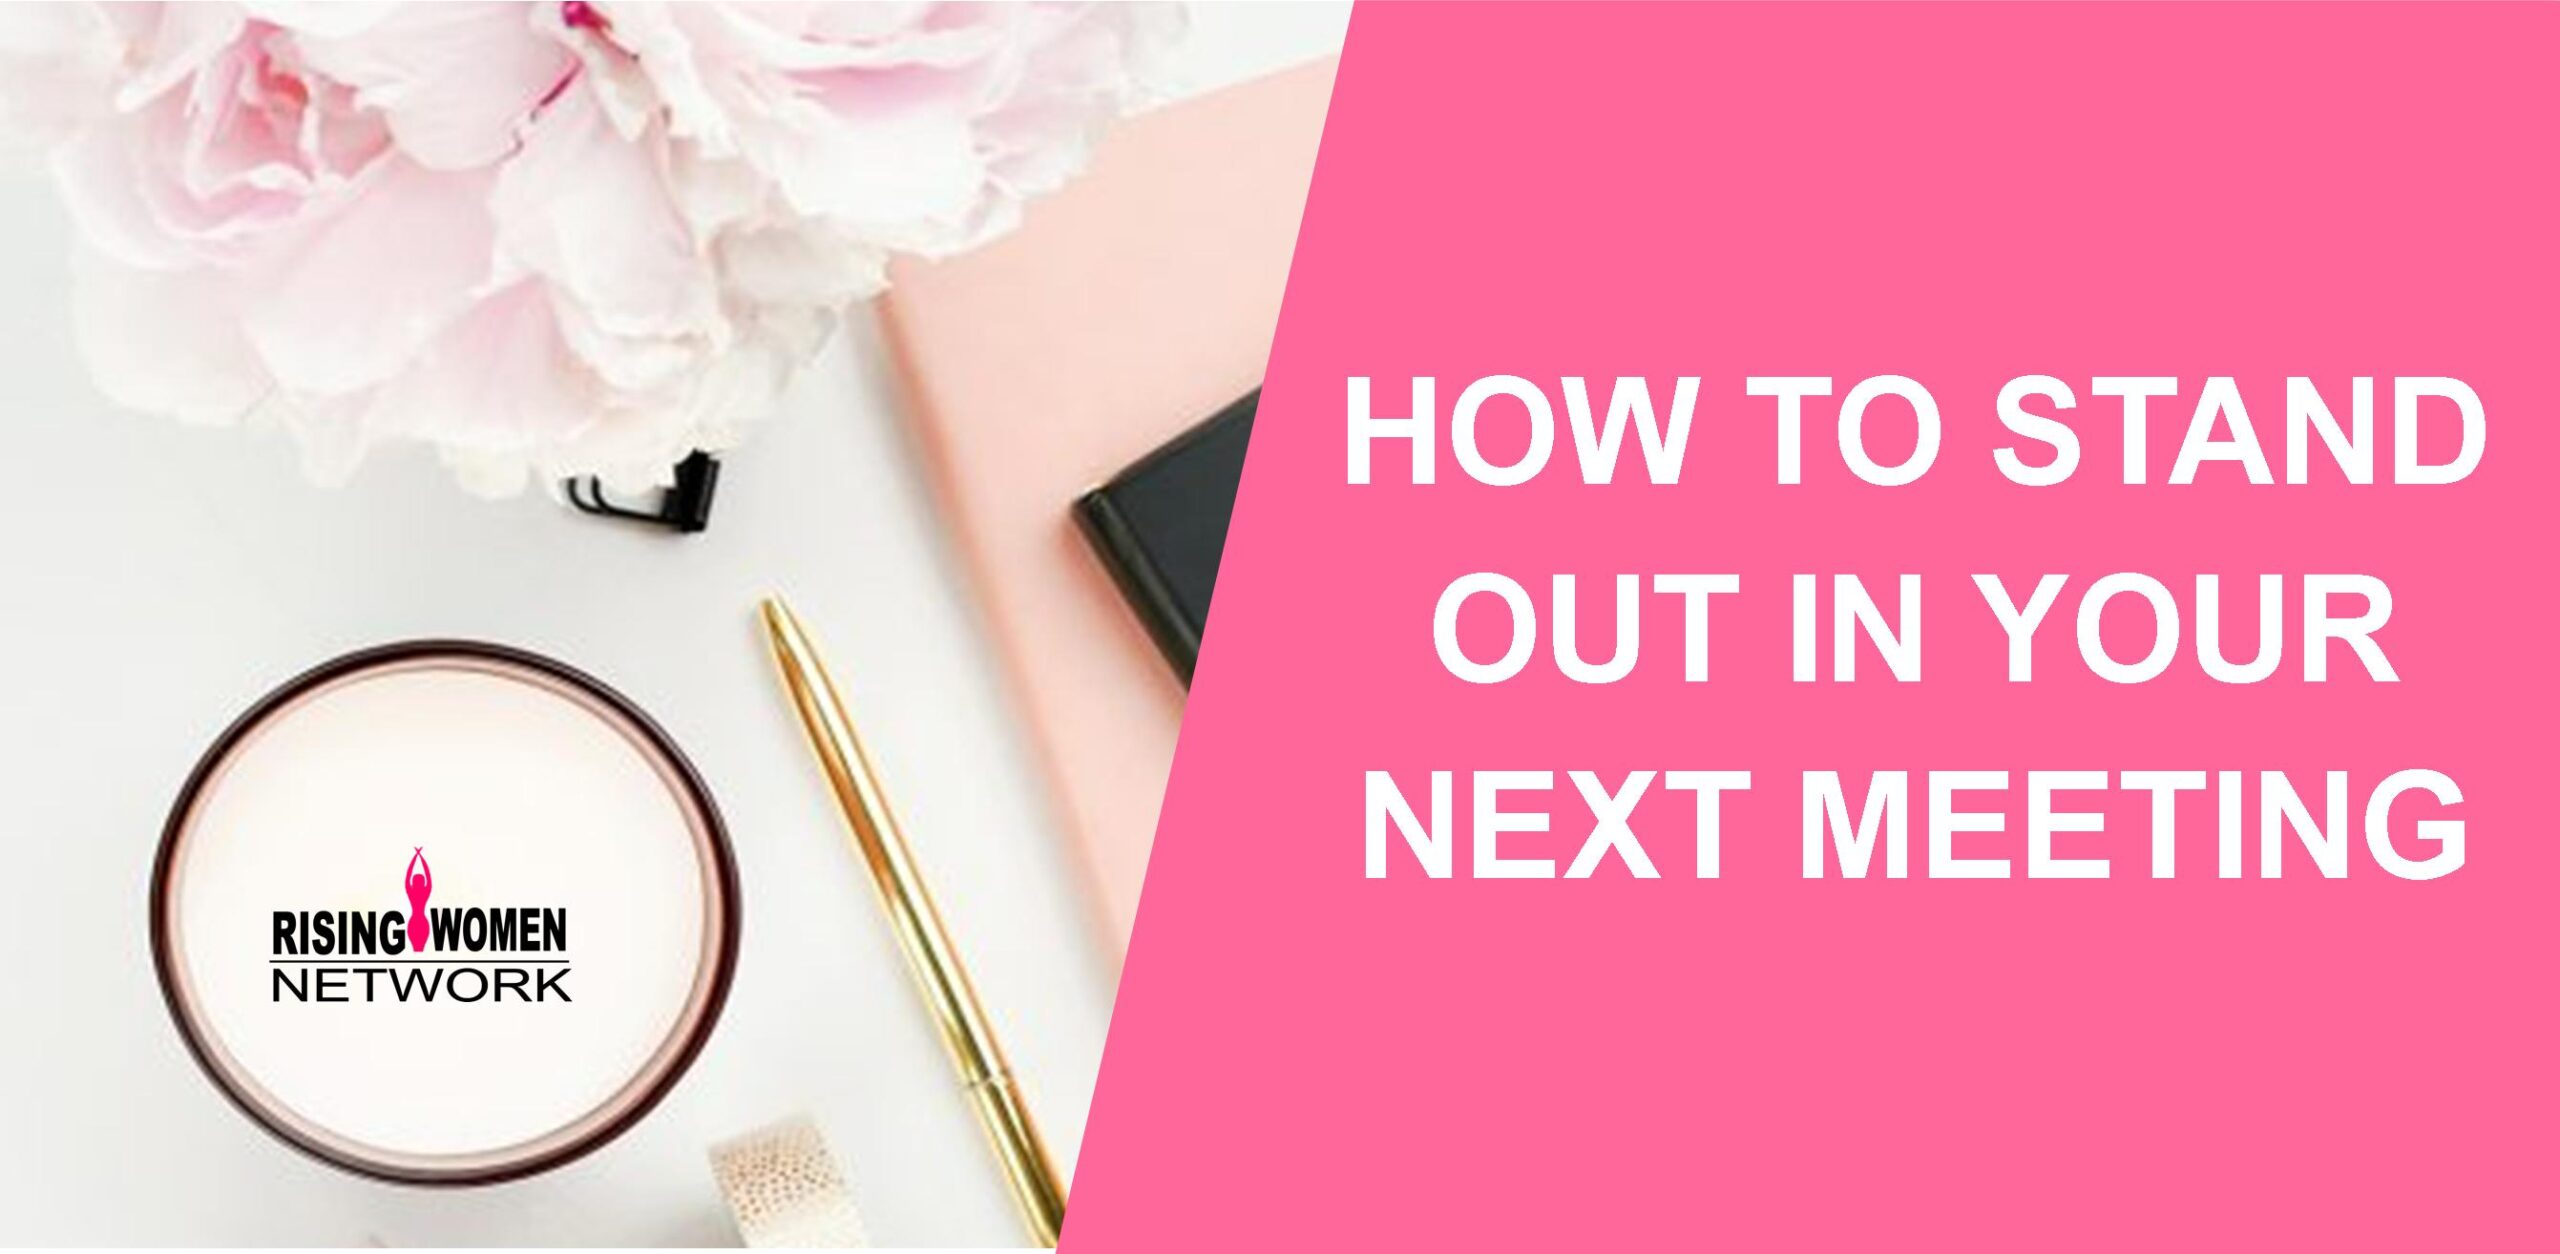 You're a wildflower at heart; you just need a little water and the chance to bloom. This article will walk you through how to make sure you're seen, heard, stand out and presenting yourself with the most girl boss confidence.